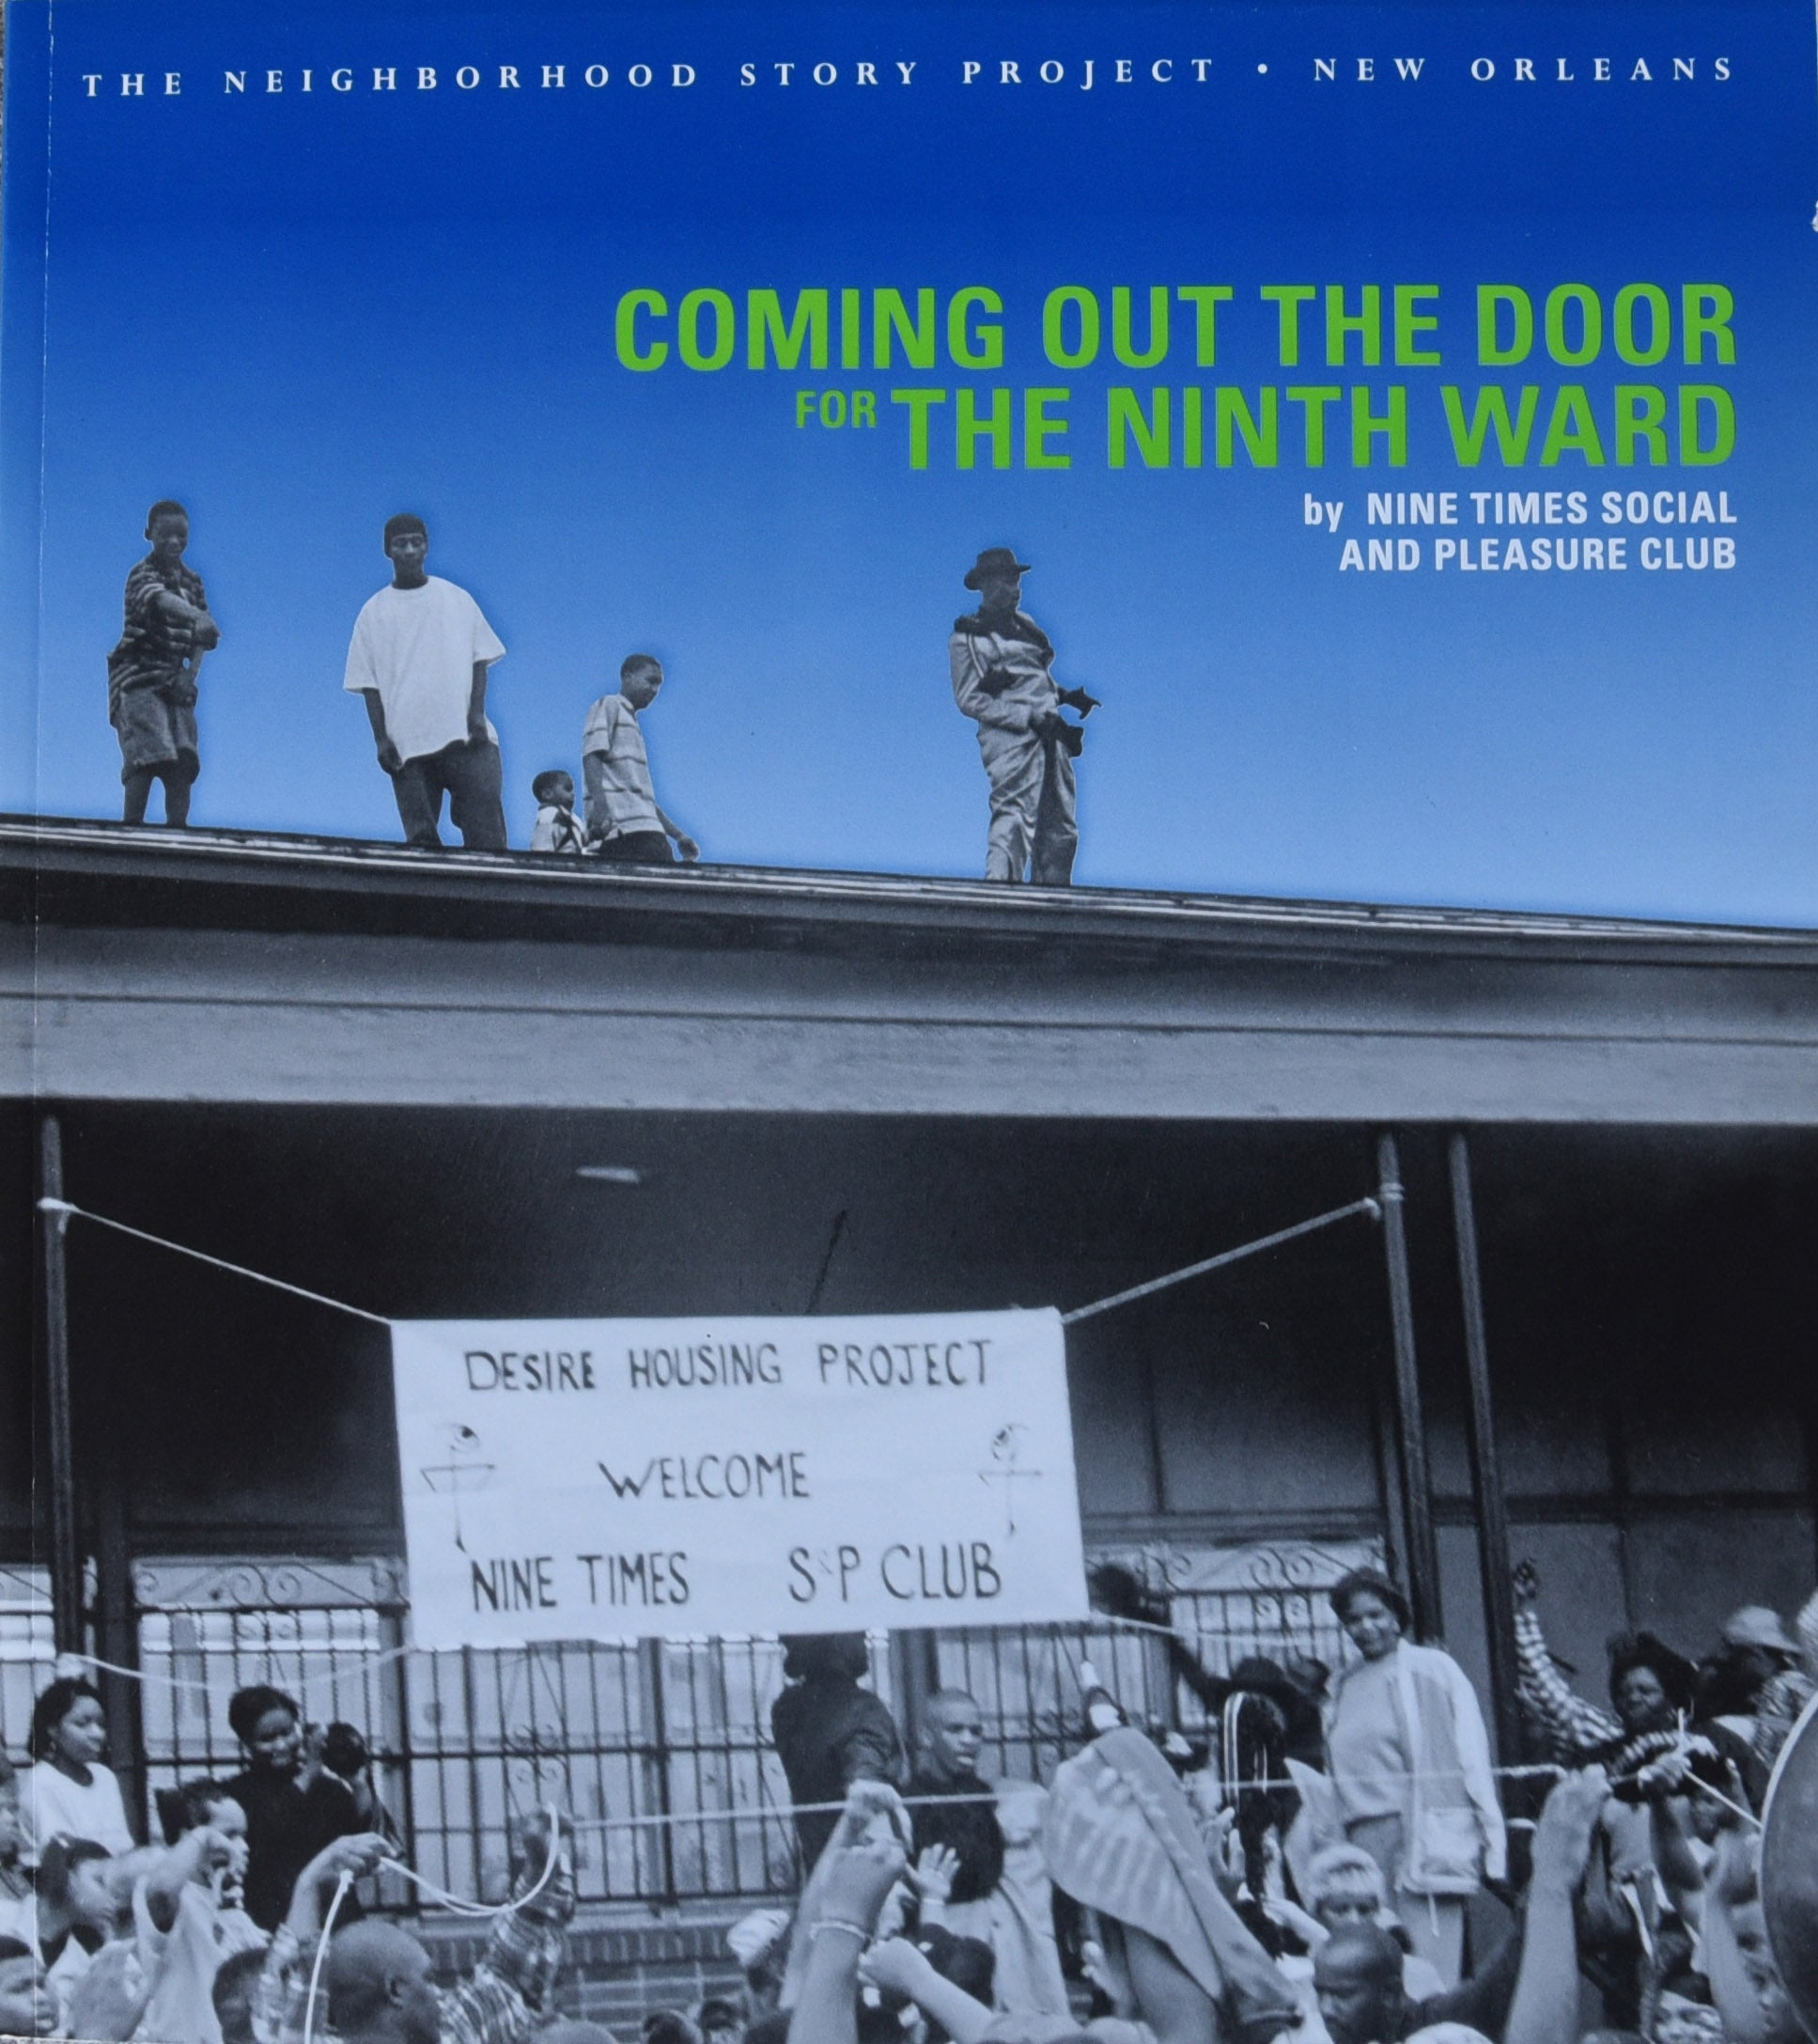 Coming out of the Ninth Ward: Nine Times Social and Pleasure Club (a Neighborhood Story Project book)